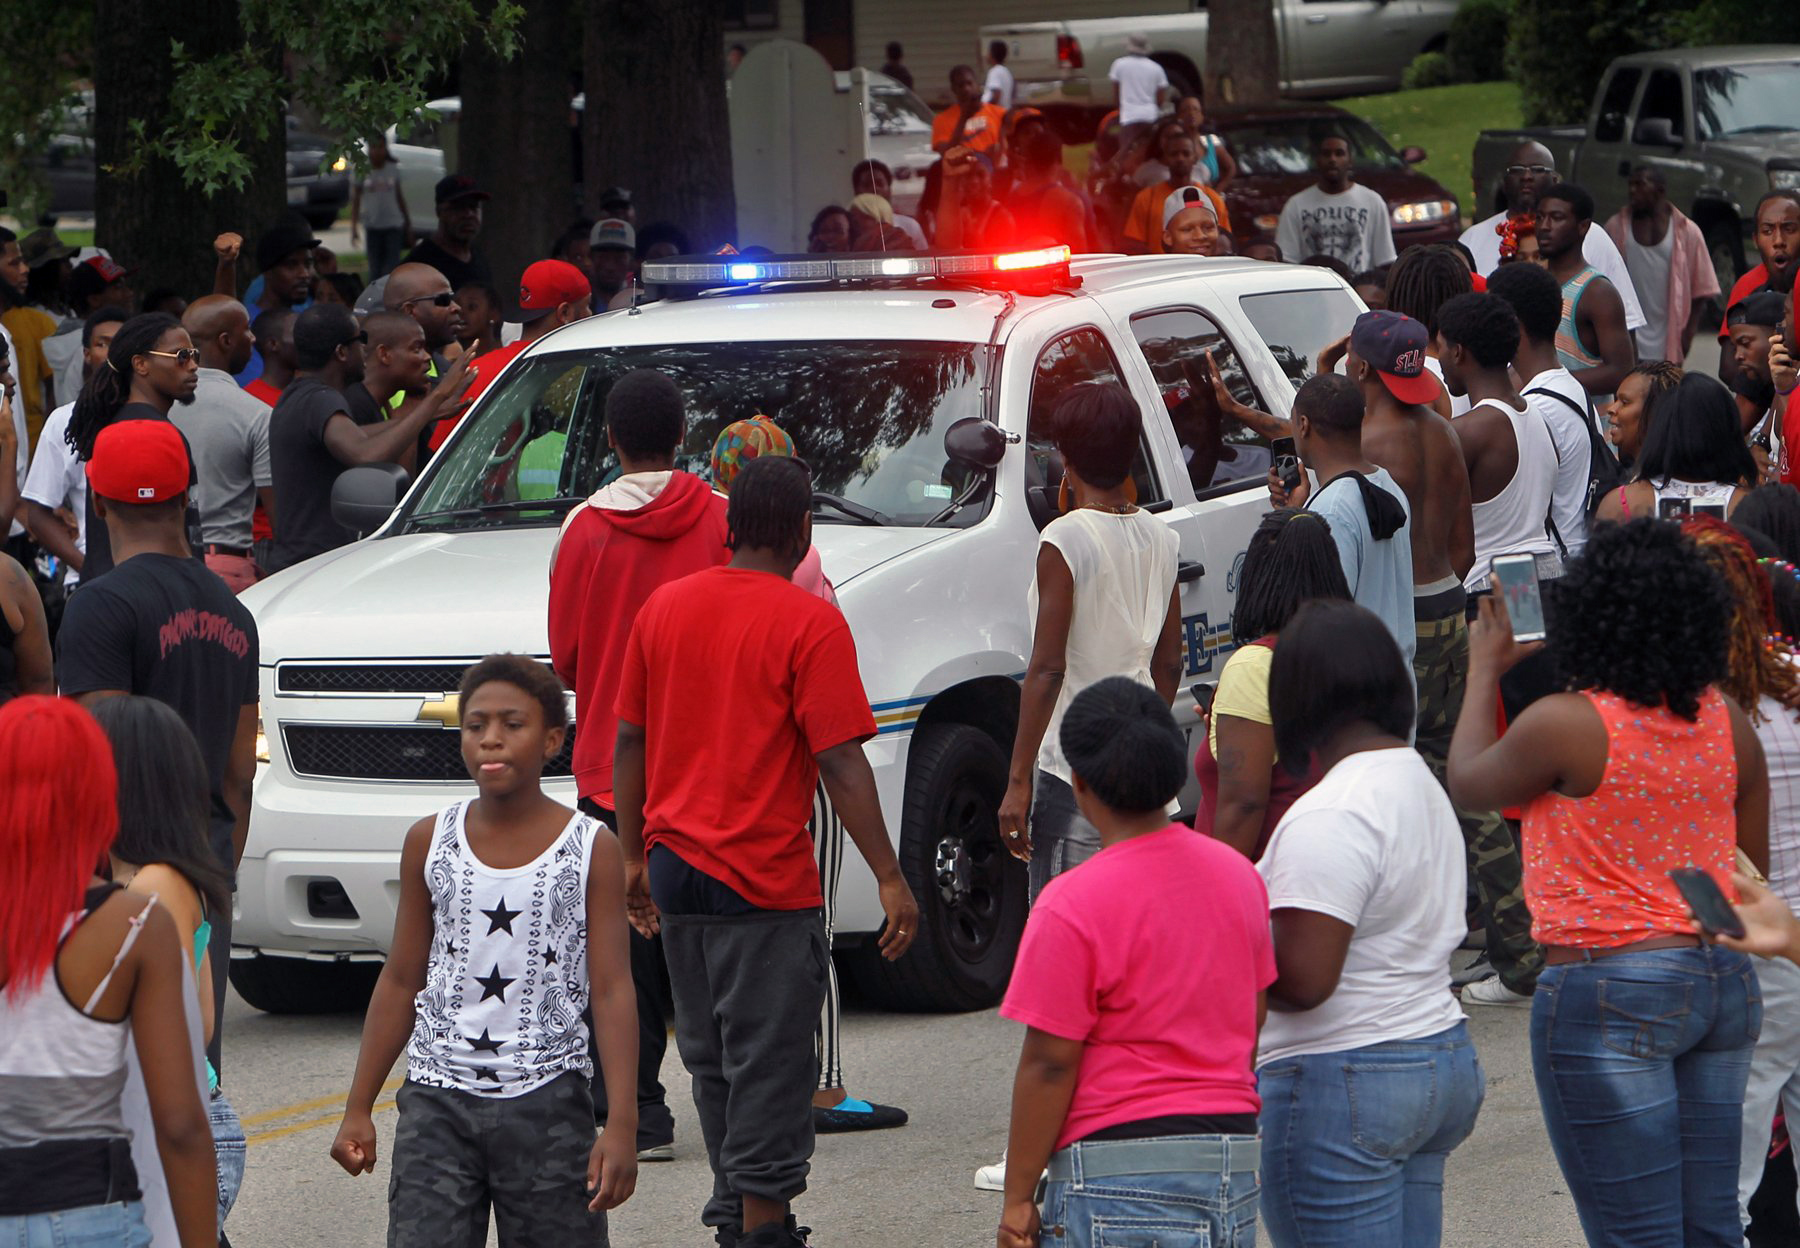 Protesters bang on the side of a police car in Ferguson, Mo. on Aug. 10, 2014.